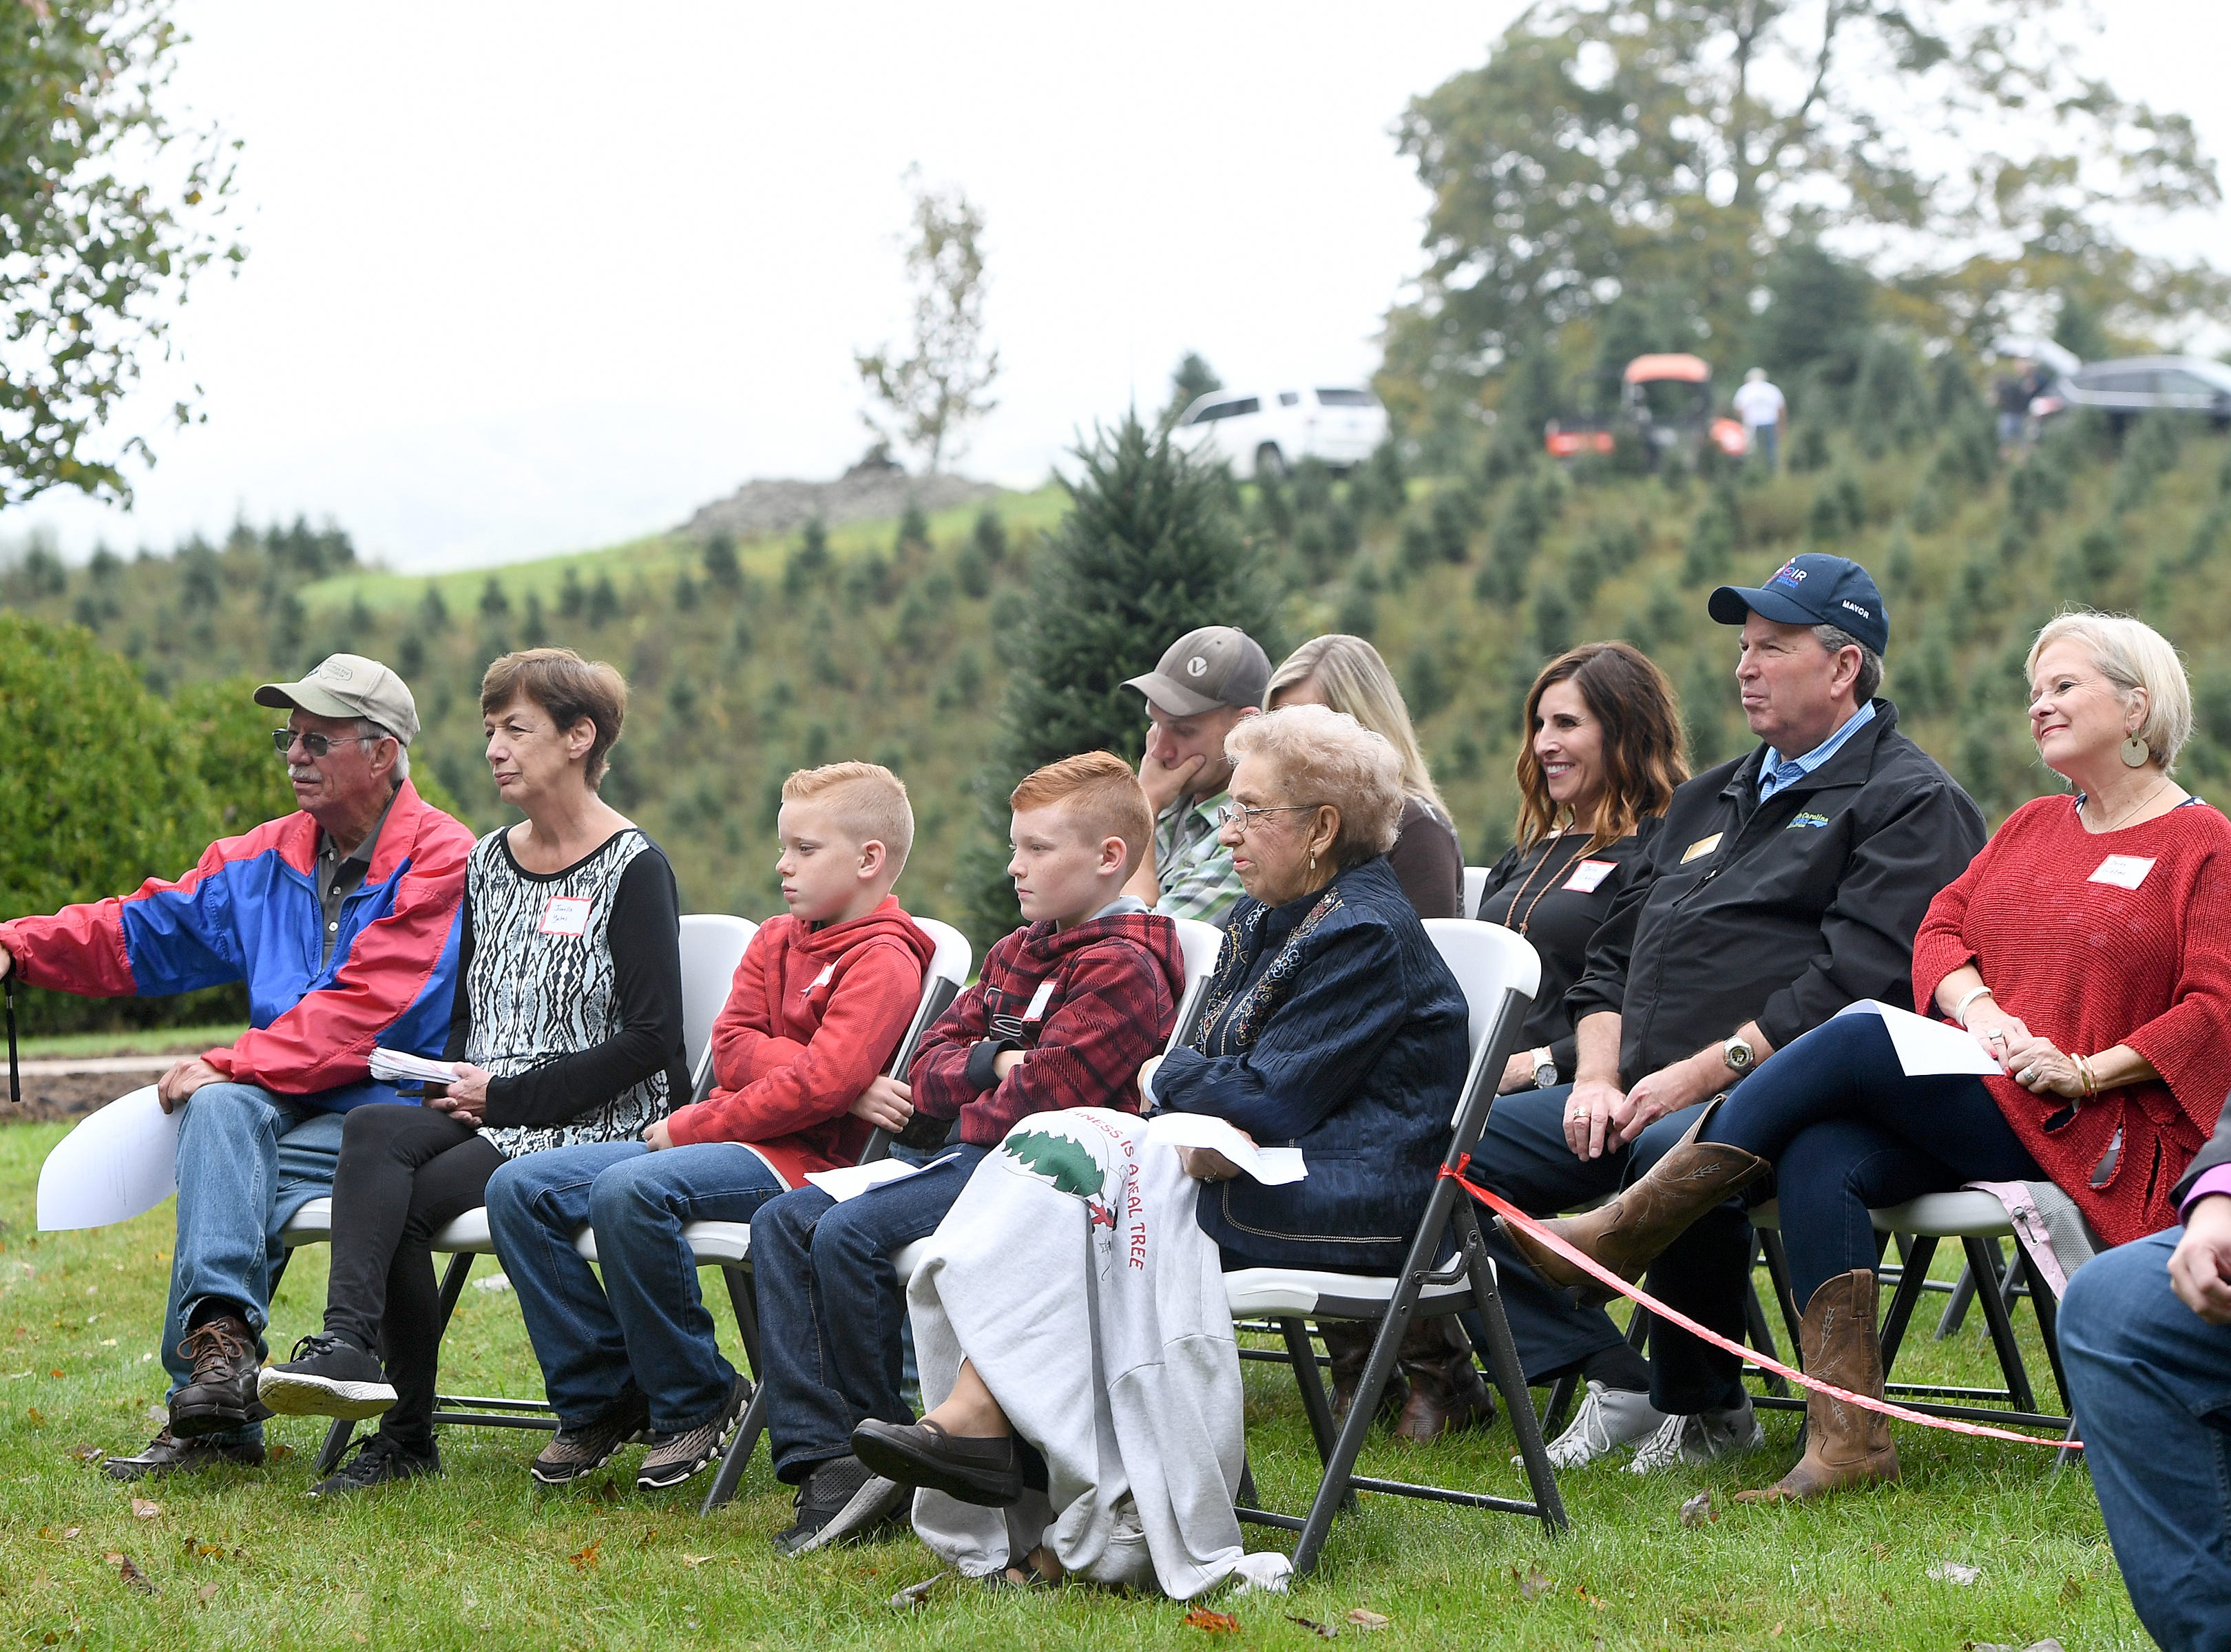 Family and friends attend an event at Mountain Top Fraser Fir in Newland on Sept. 24, 2018. Larry Smith, owner of the farm, was named the Grand Champion in the National Christmas Tree Association's Christmas tree contest and with the title comes the honor of providing a tree to the White House to be displayed in the Blue Room during the Christmas season.